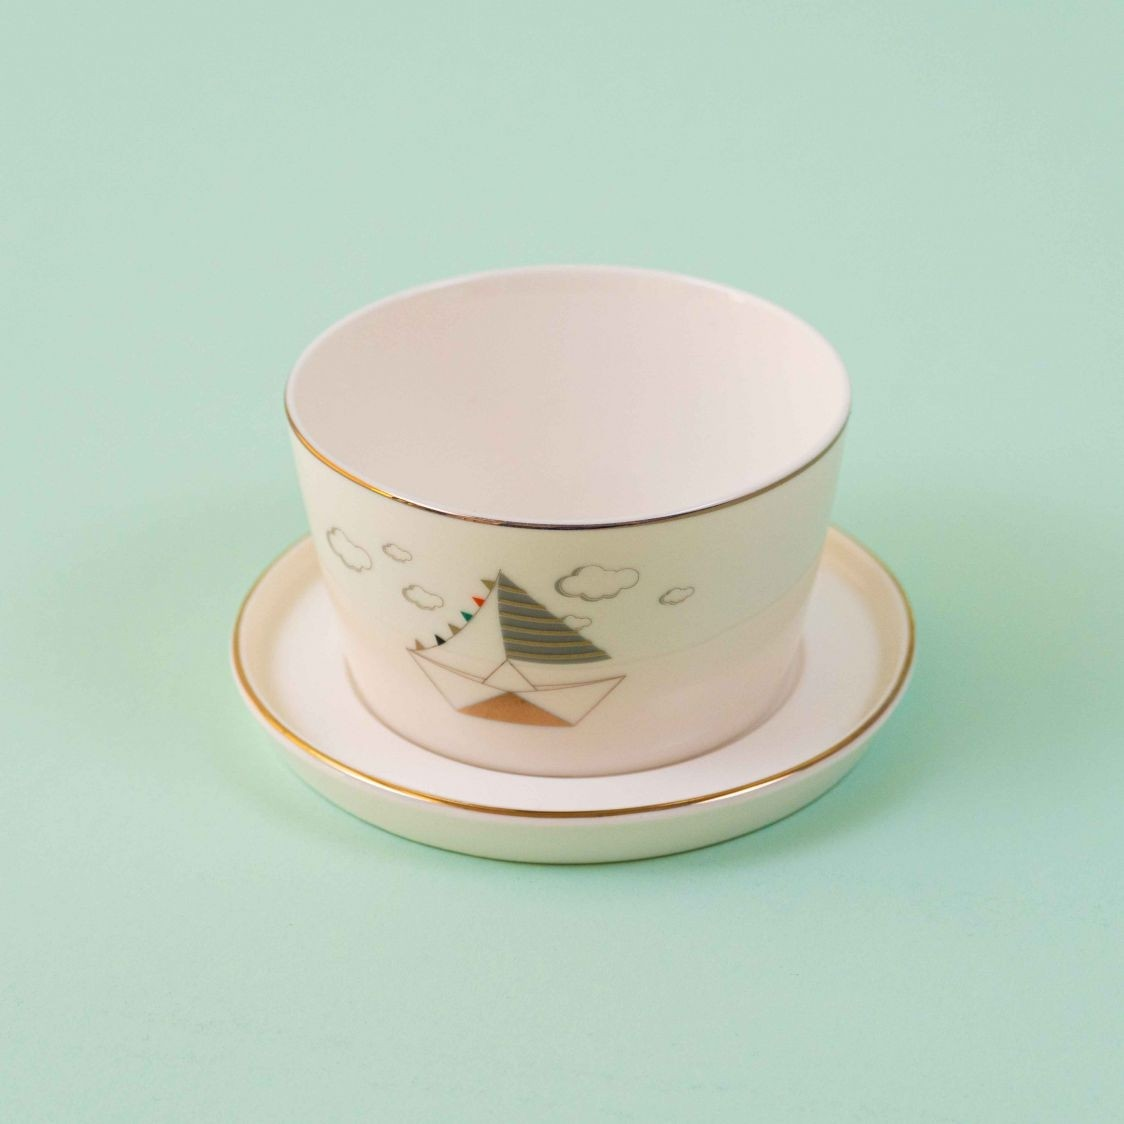 BOWL MEGHLE WITH SAUCER BOAT SINGLE